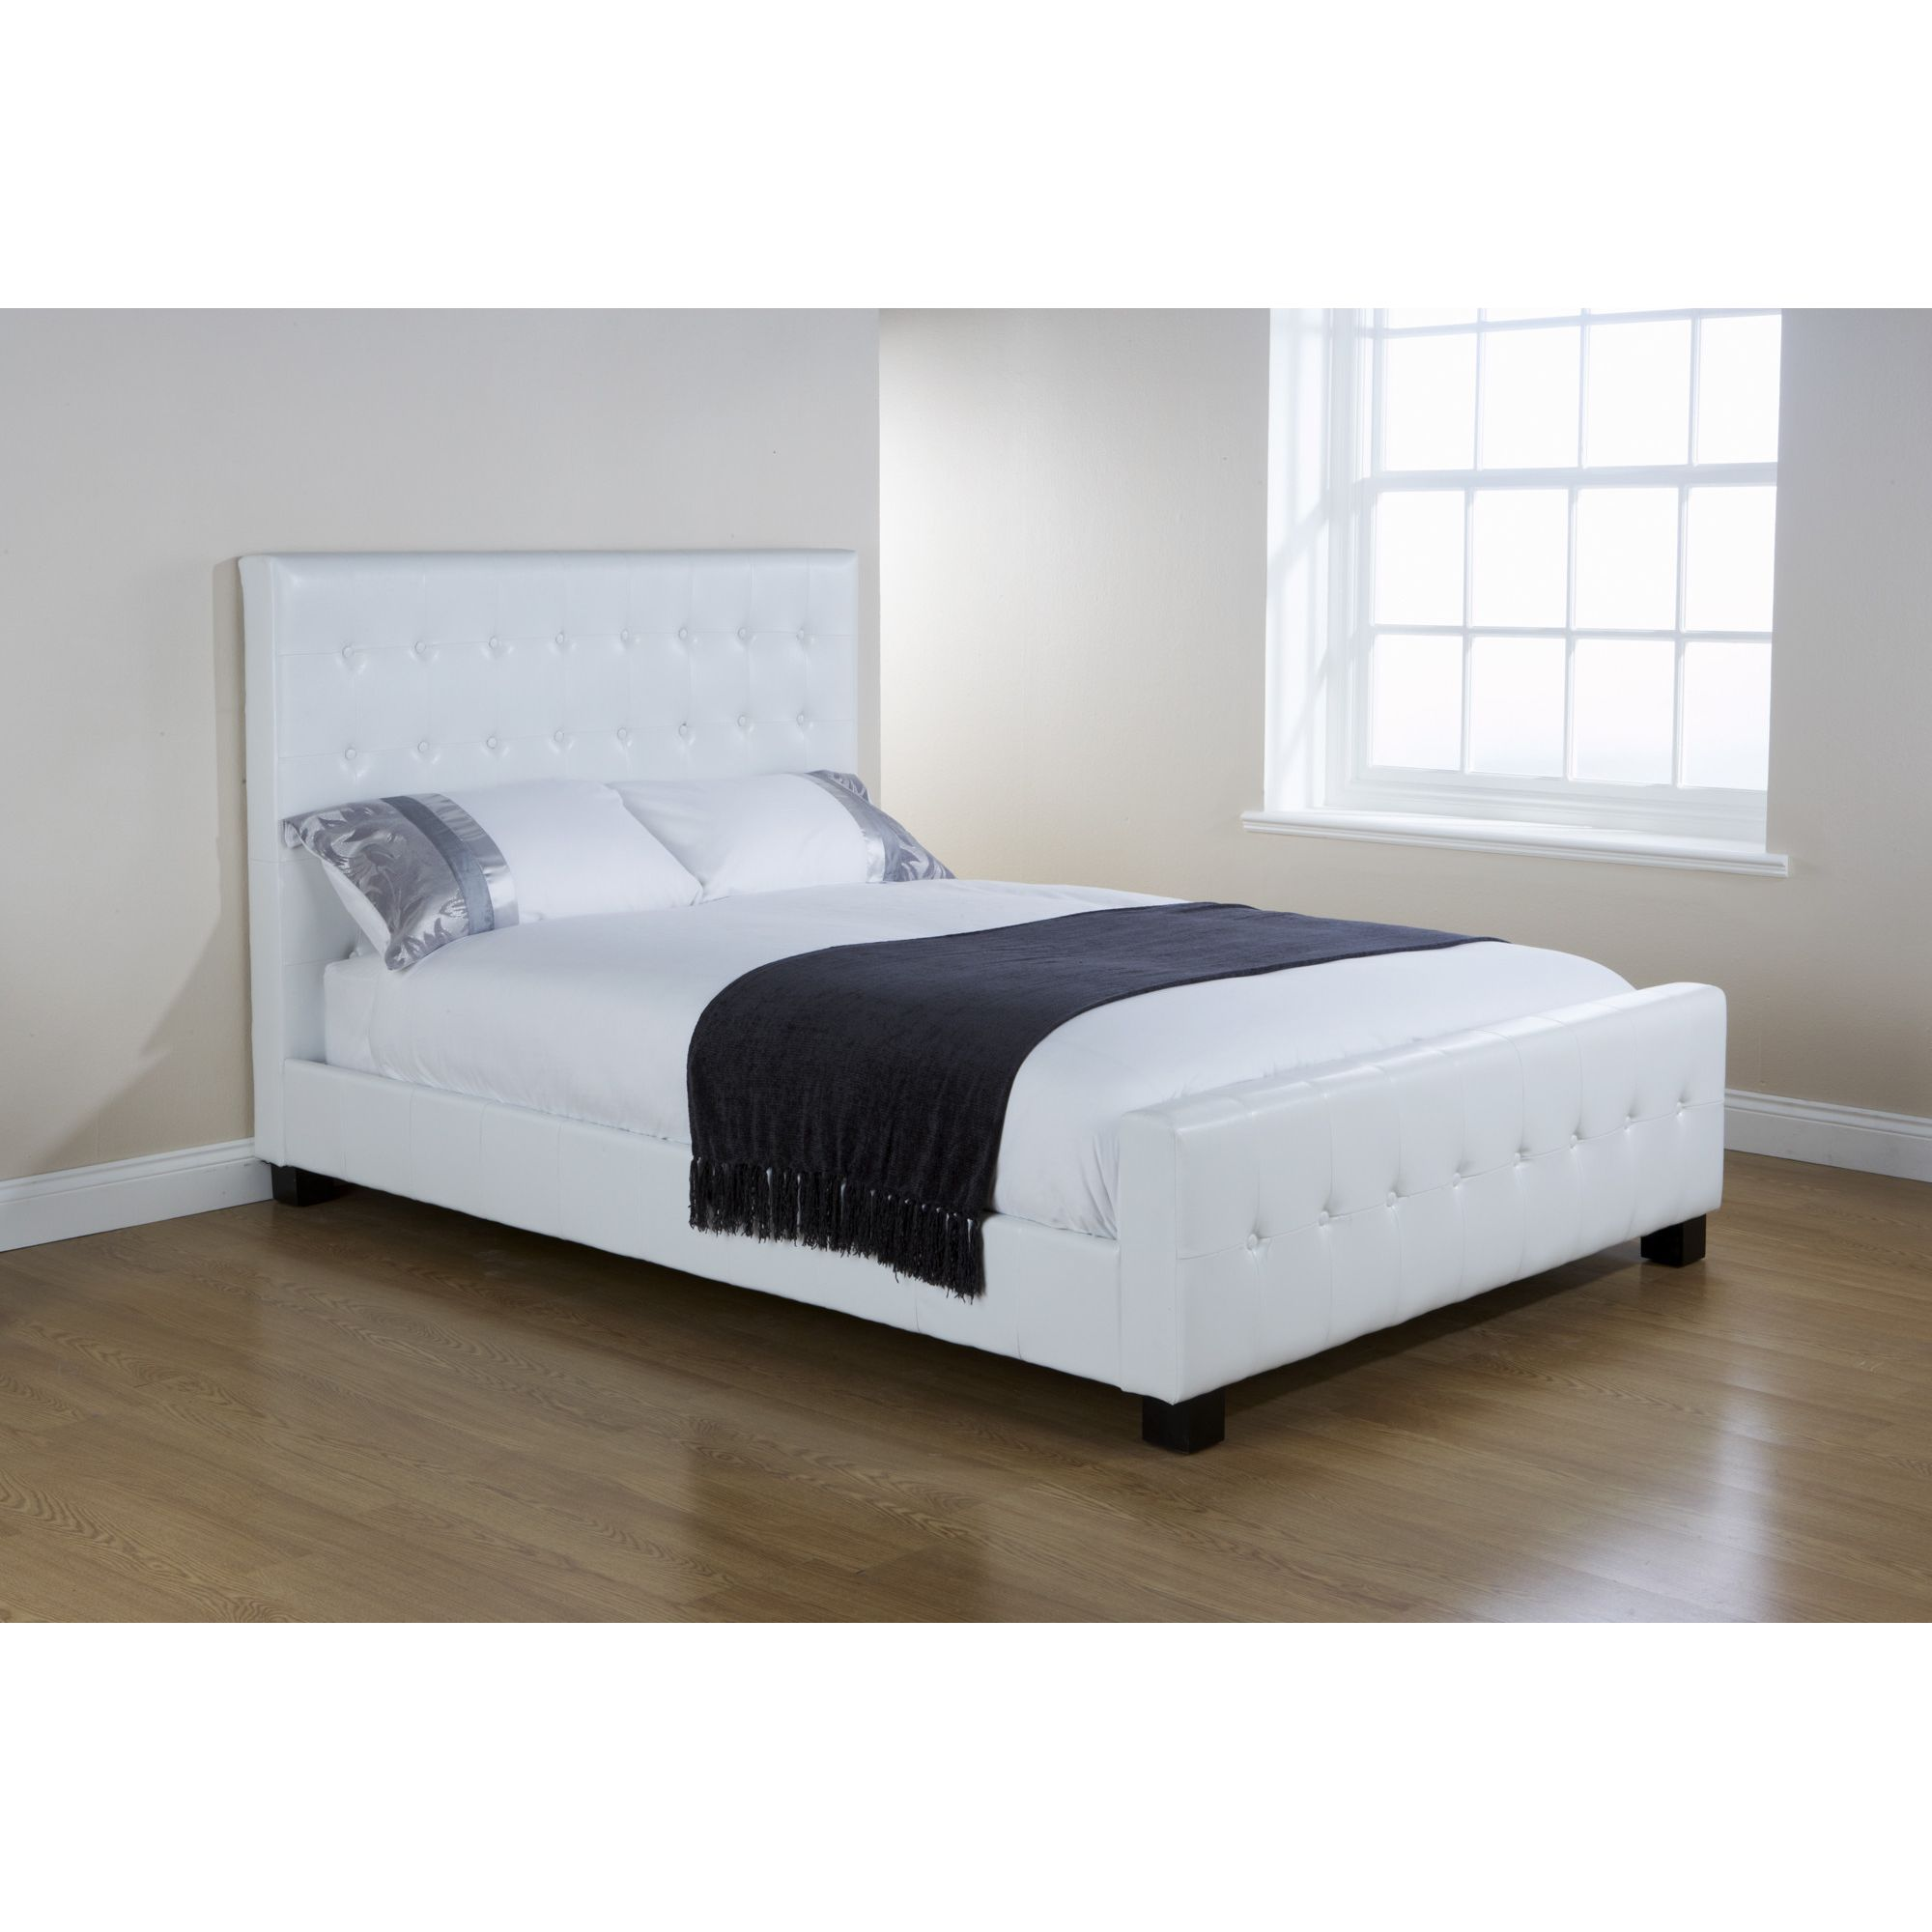 Elements Mayfair Button Bed - White - King at Tesco Direct